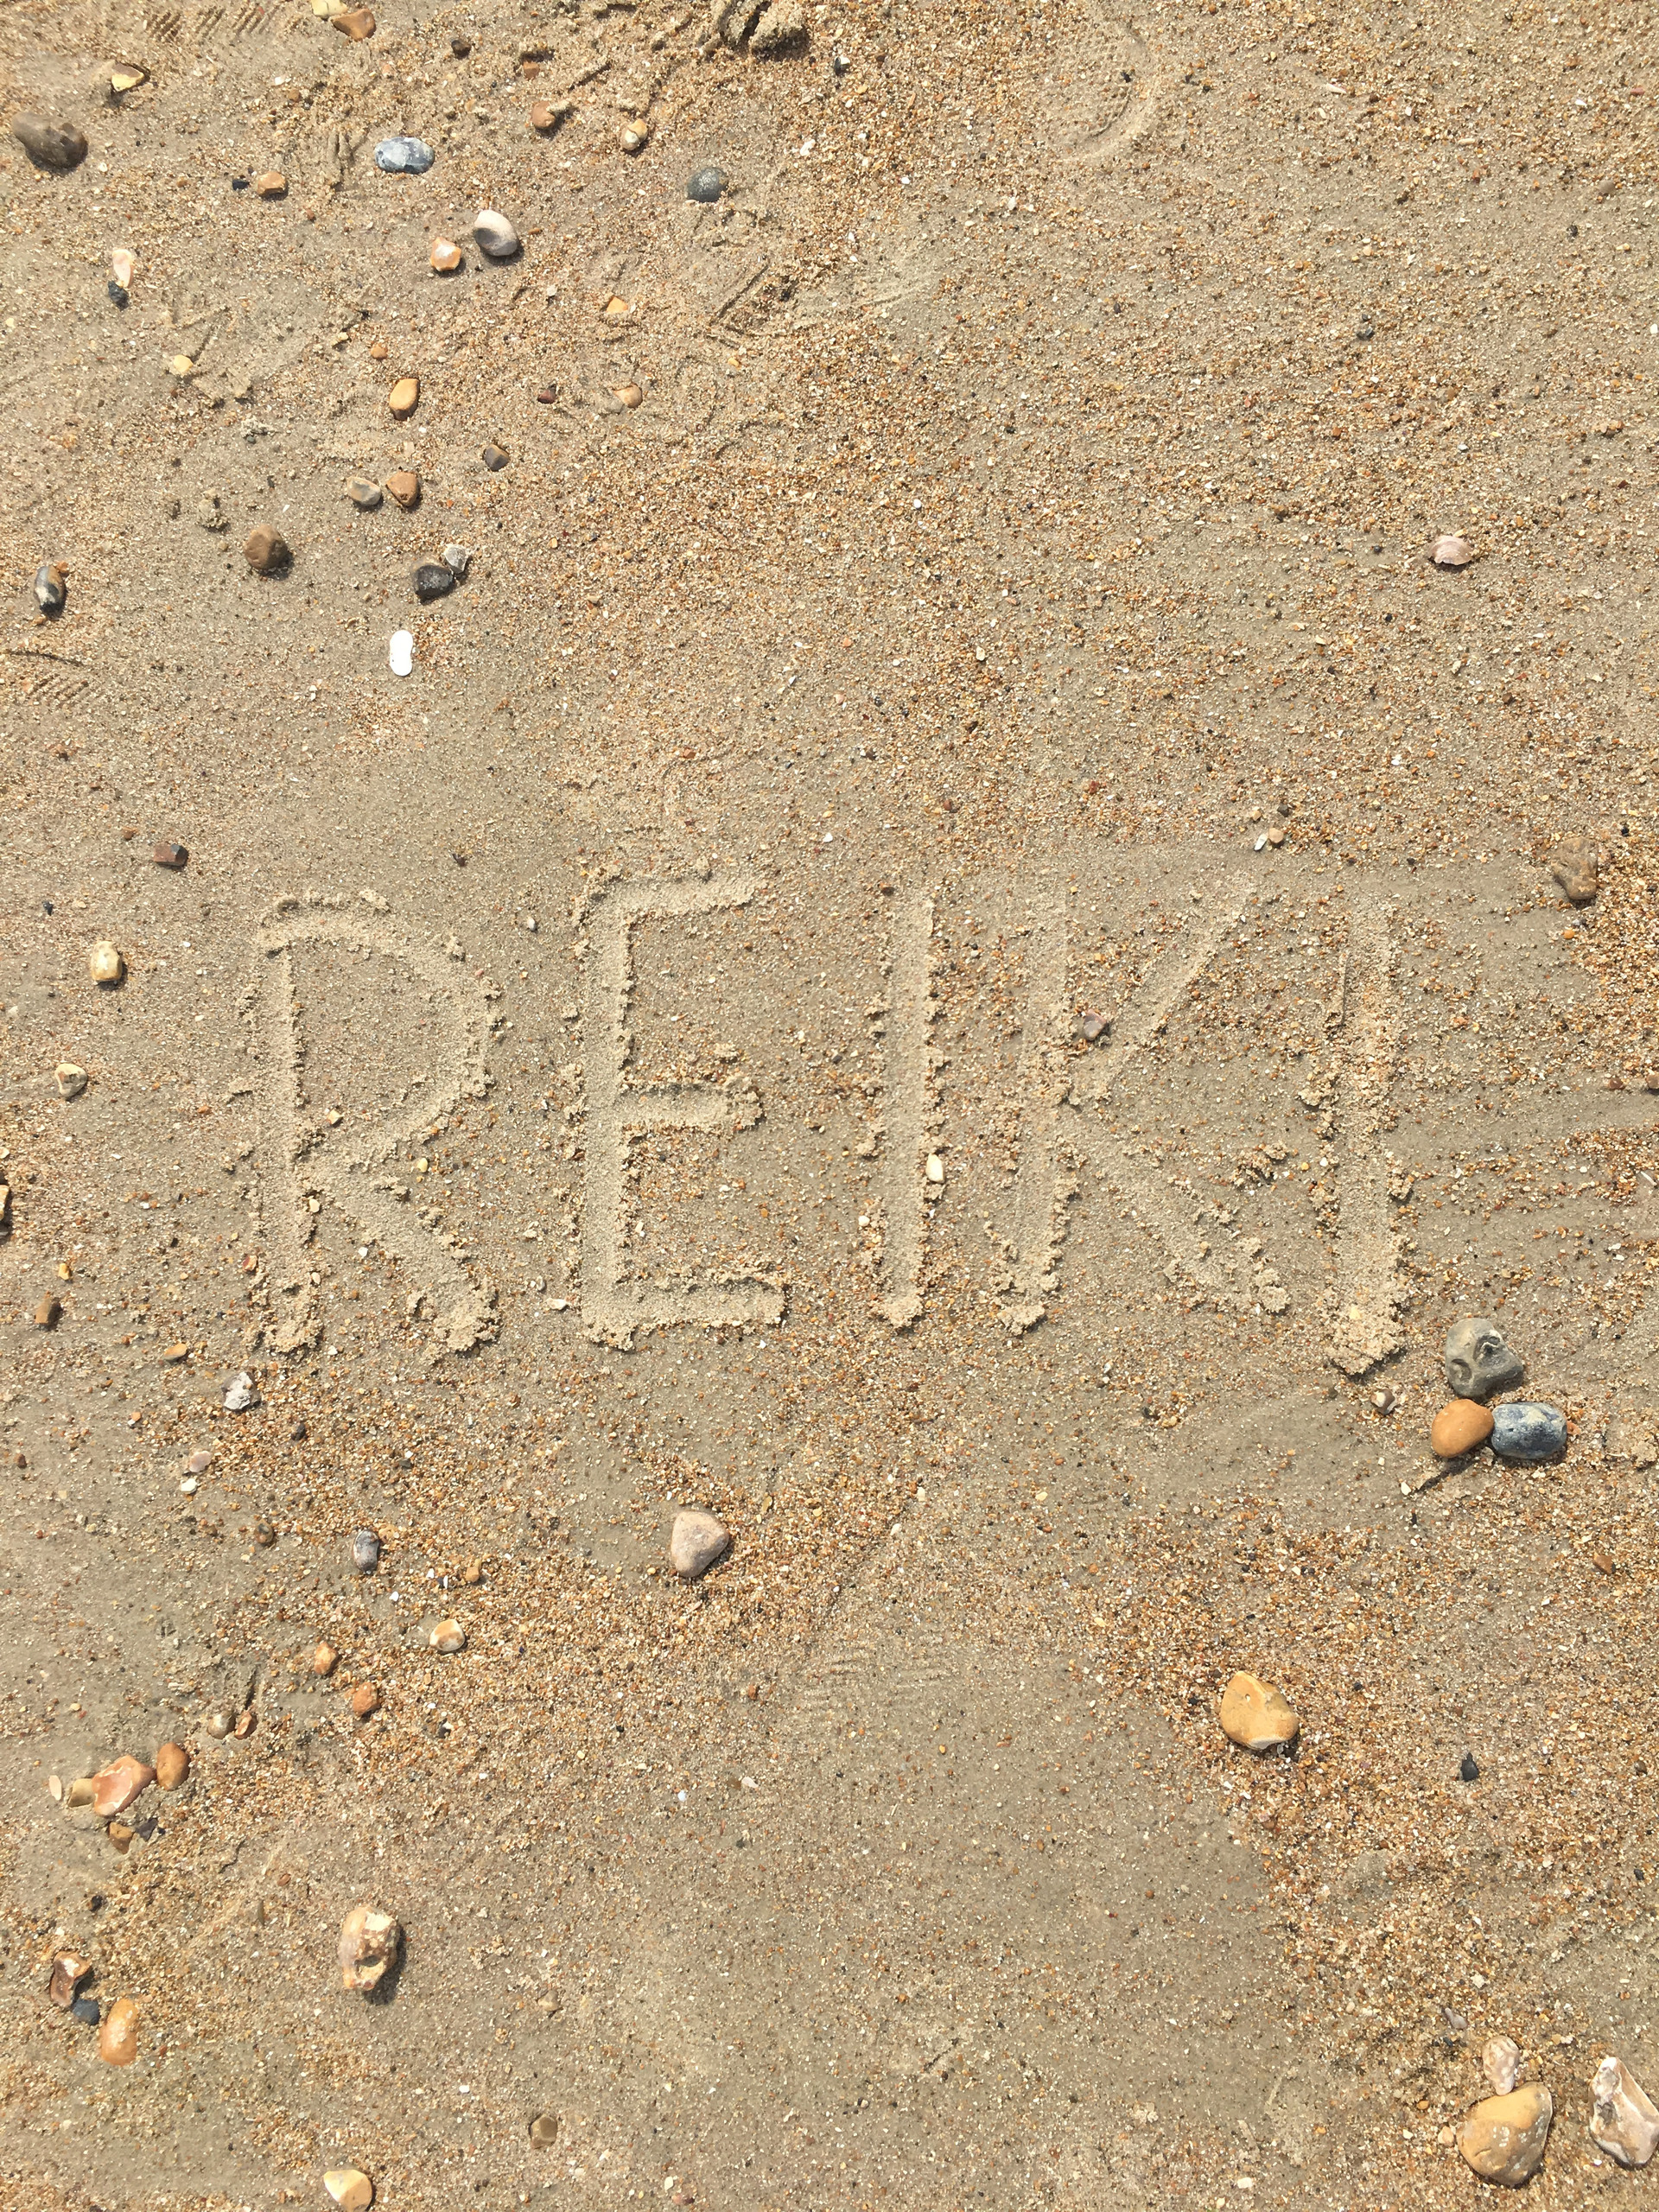 Reiki in the Sand